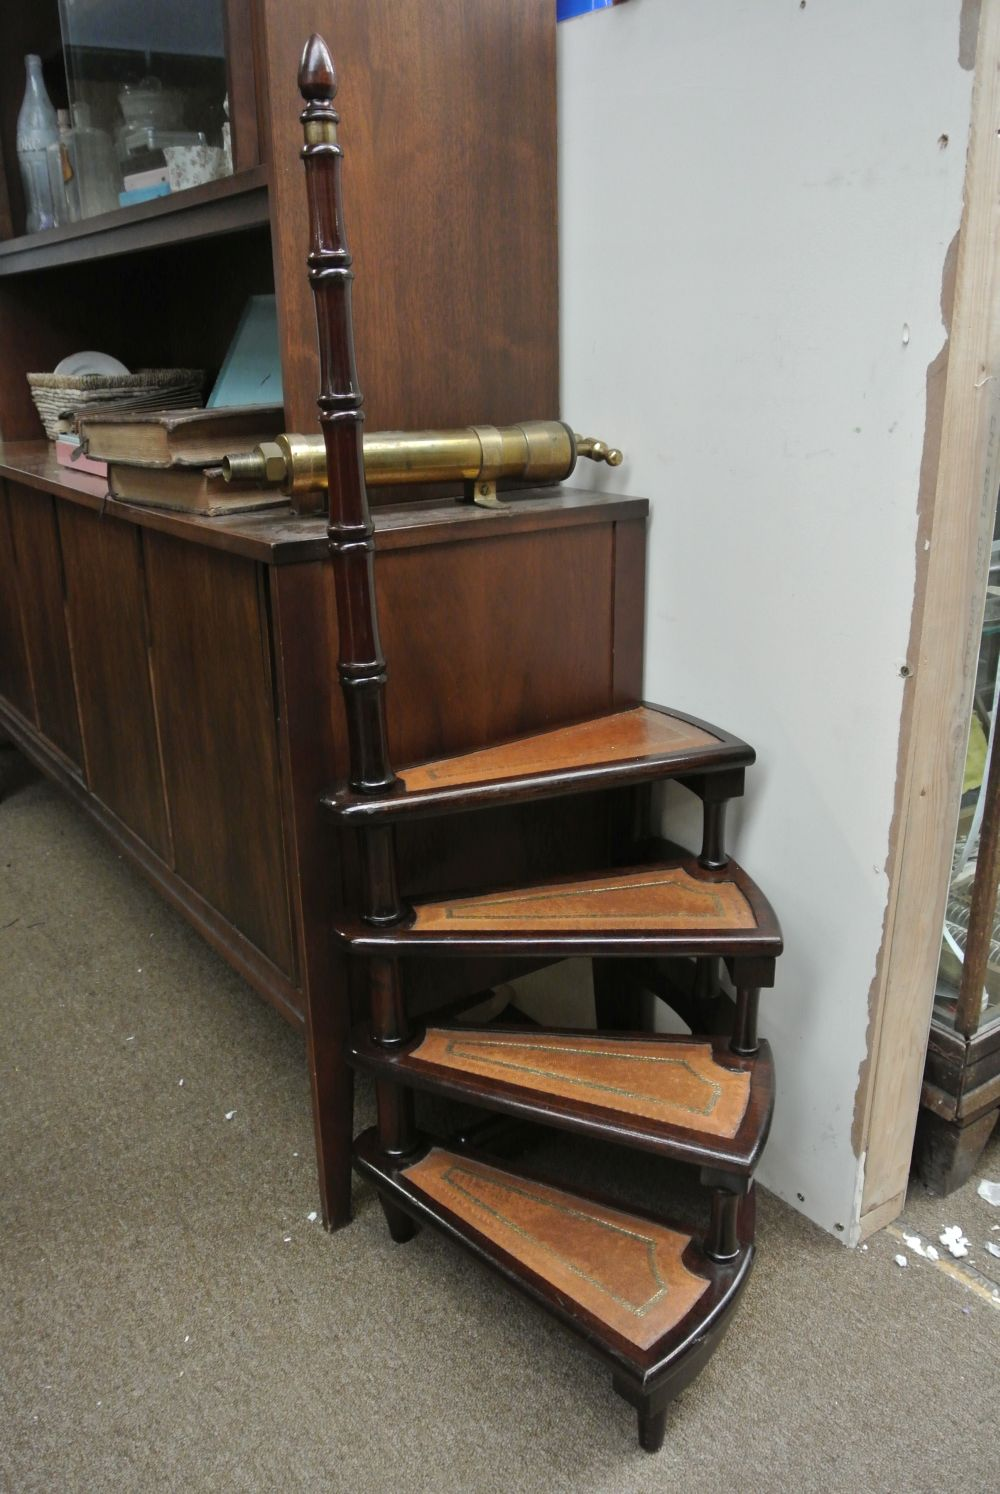 A set of antique style library steps.